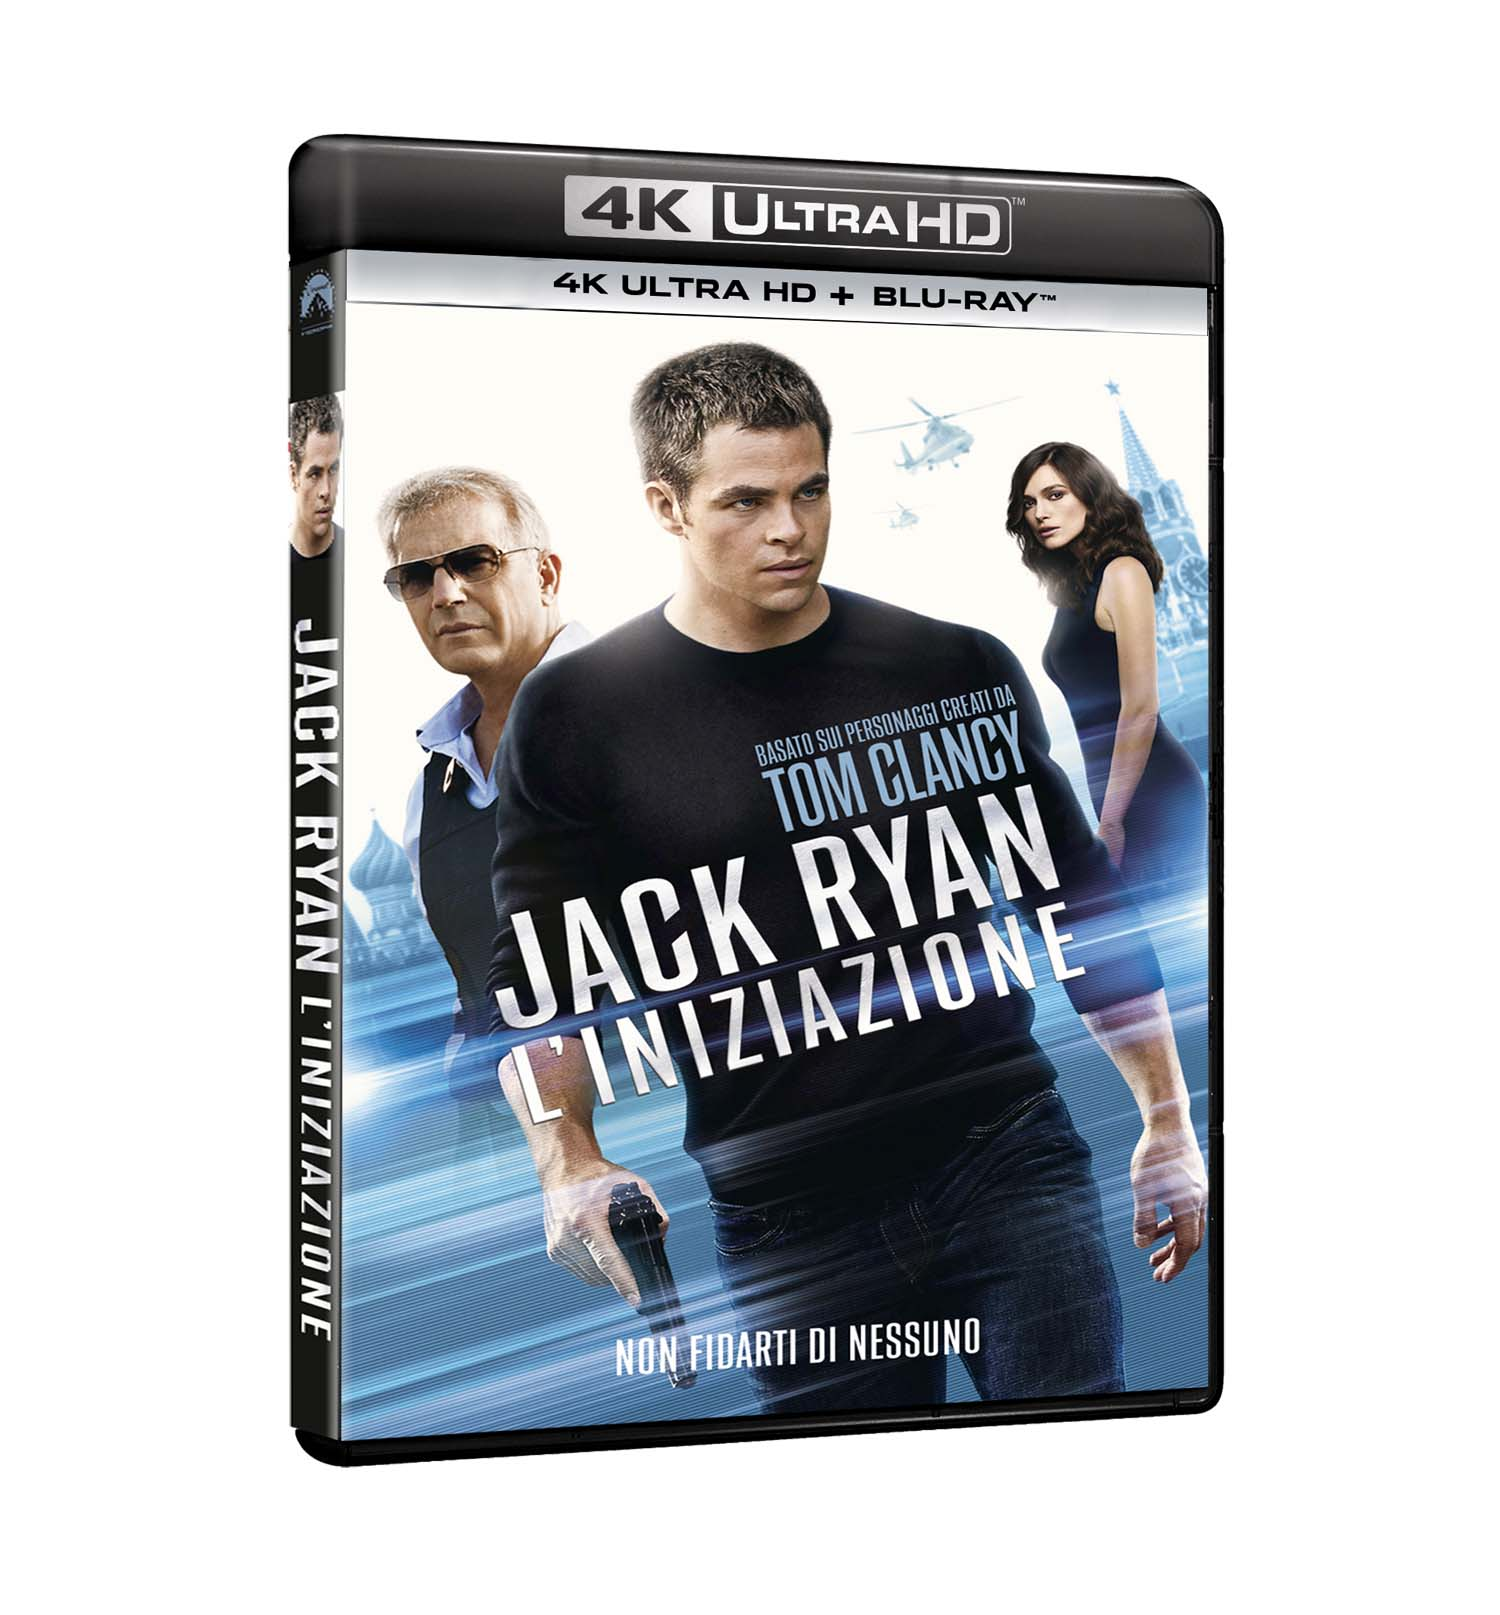 JACK RYAN - L'INIZIAZIONE (BLU-RAY 4K ULTRA HD+BLU-RAY)